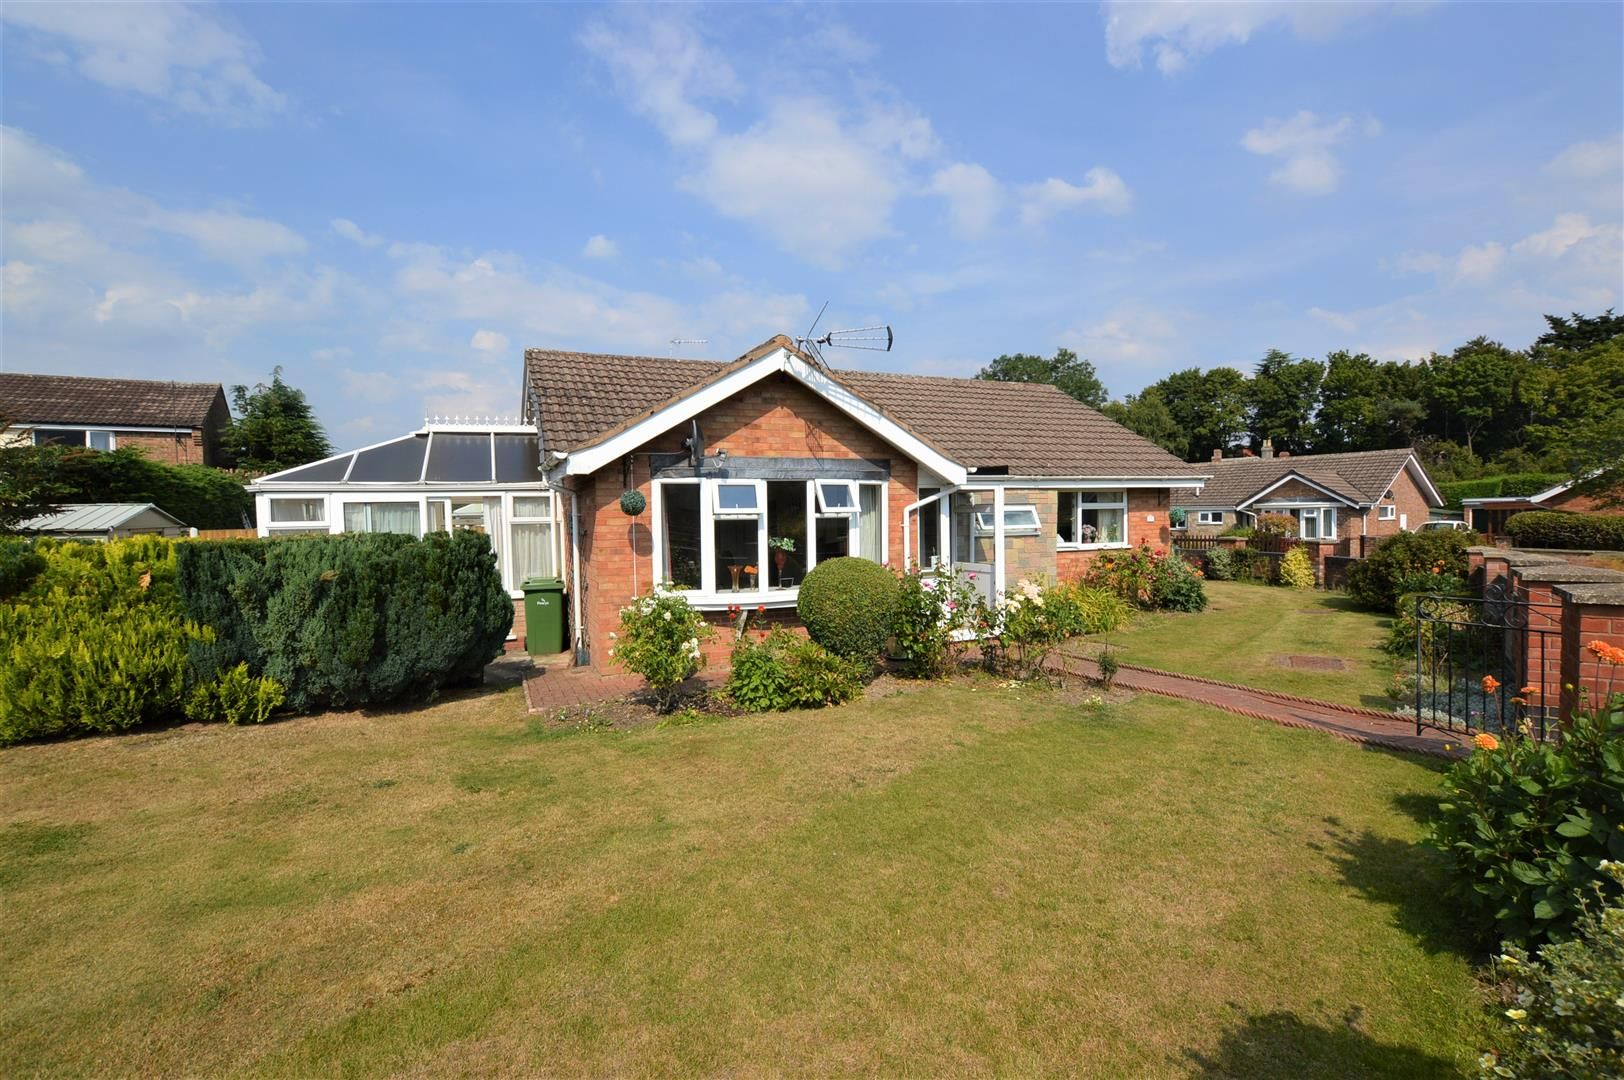 3 bed house for sale in Presteigne 1